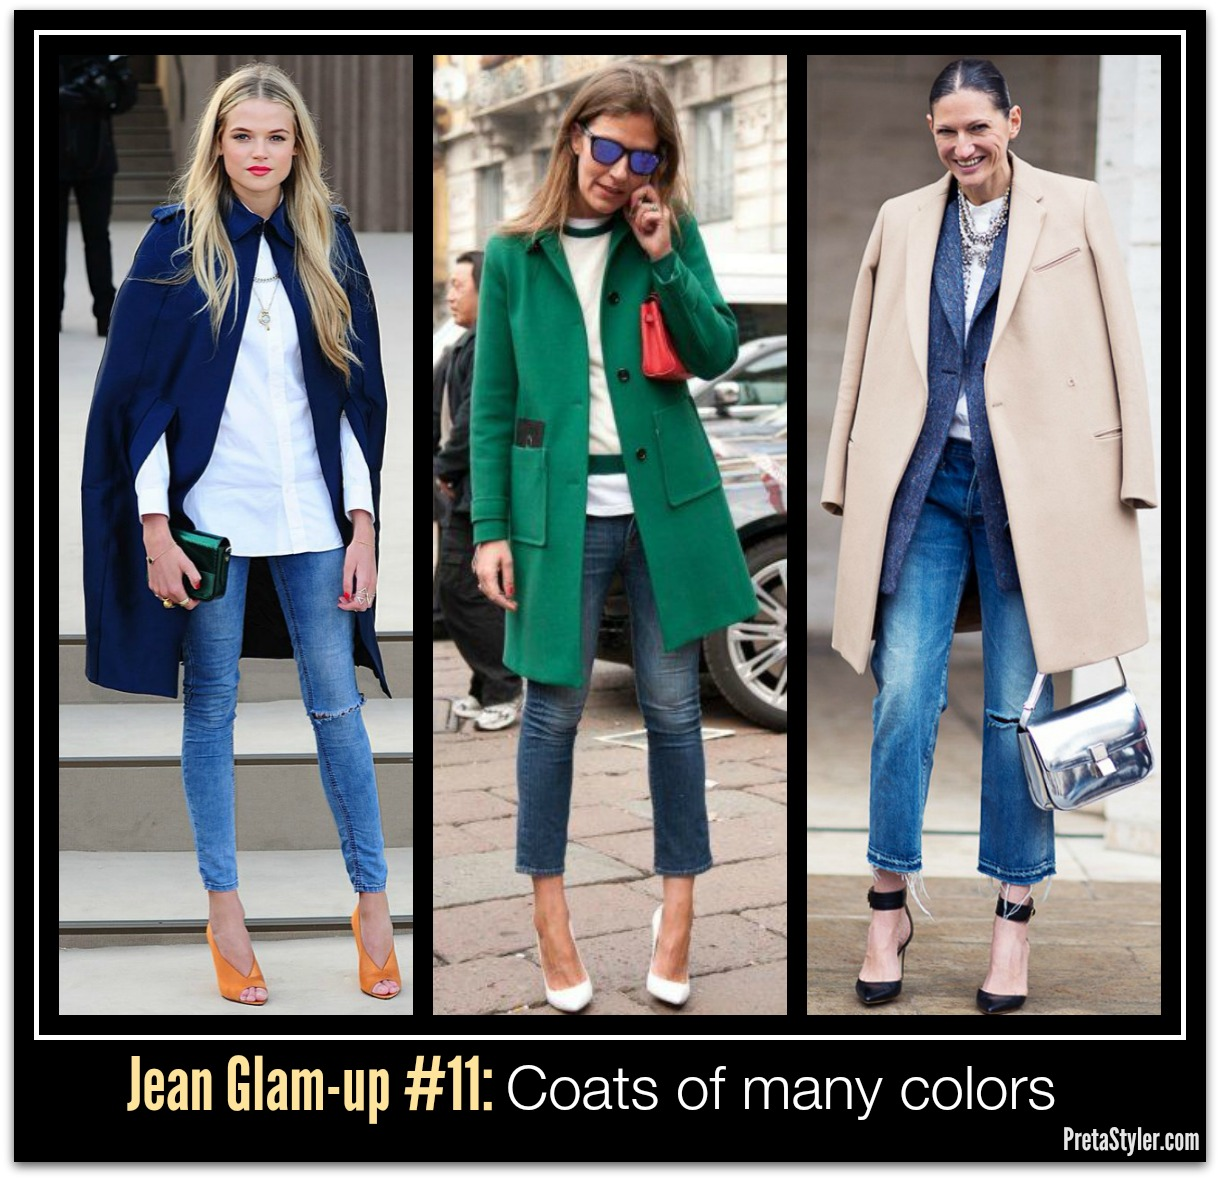 How to Glam-up Blue Jeans #11